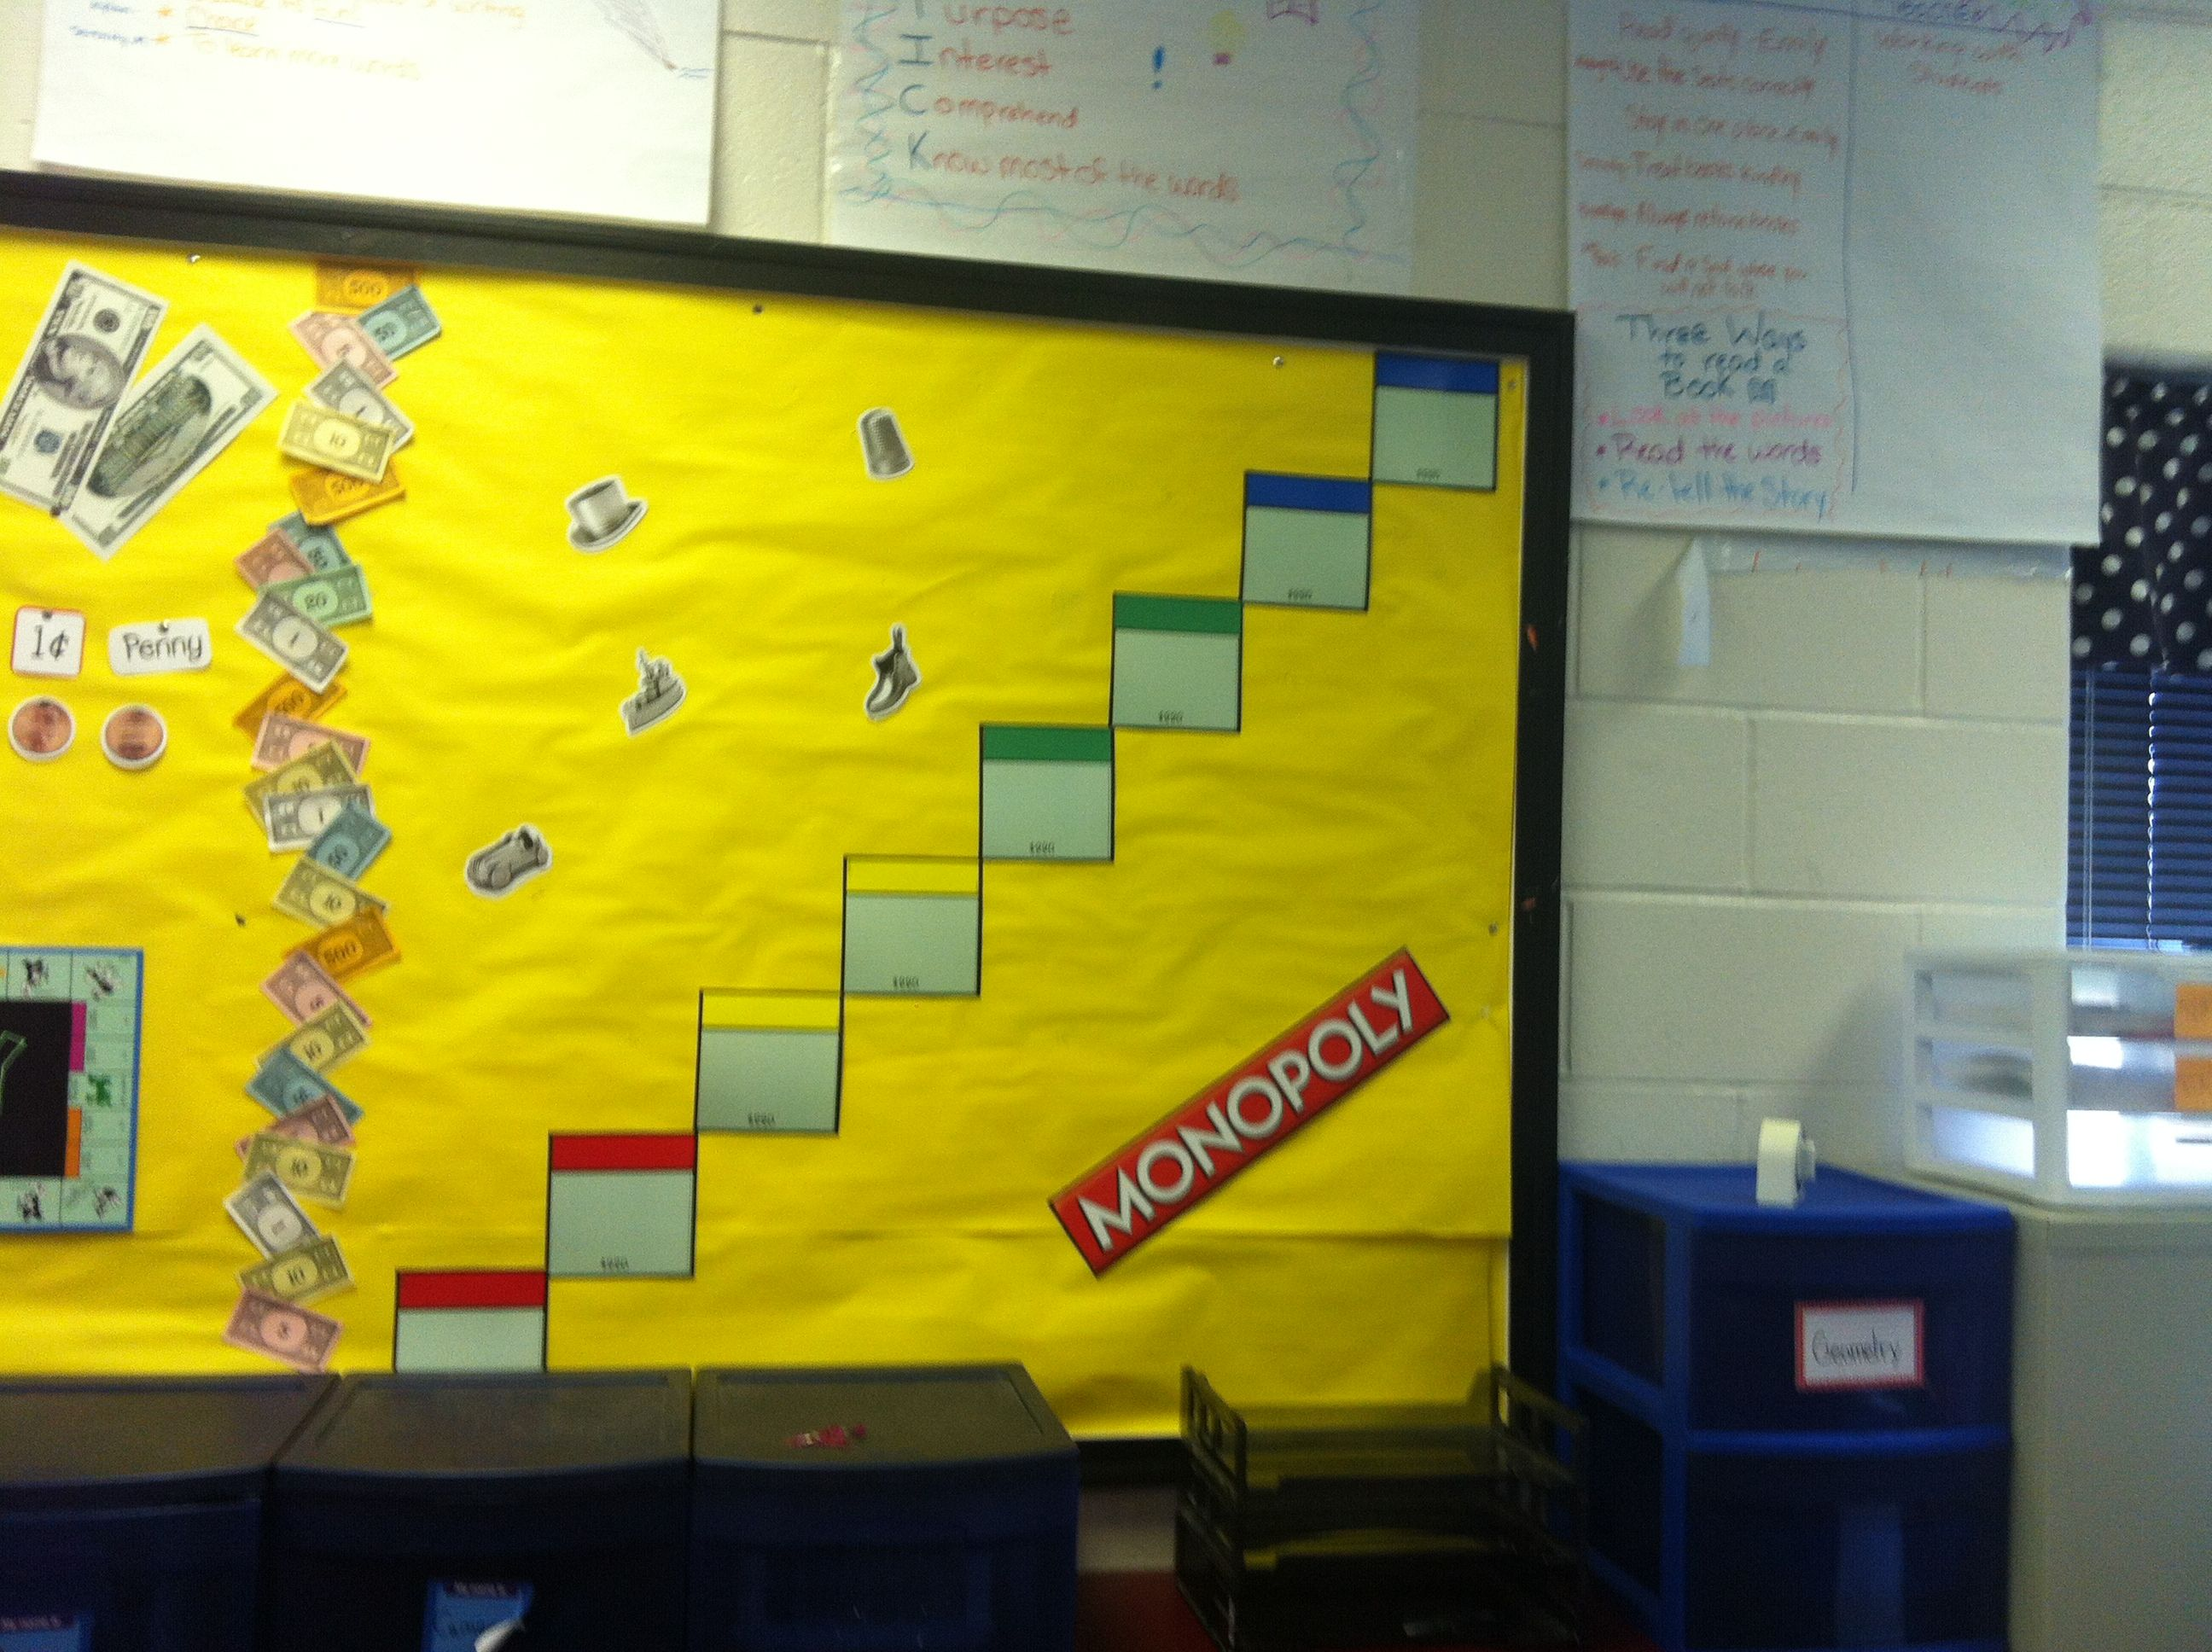 Goals Chart For Monopoly Classroom Monopoly Classroom Goal Charts Classroom